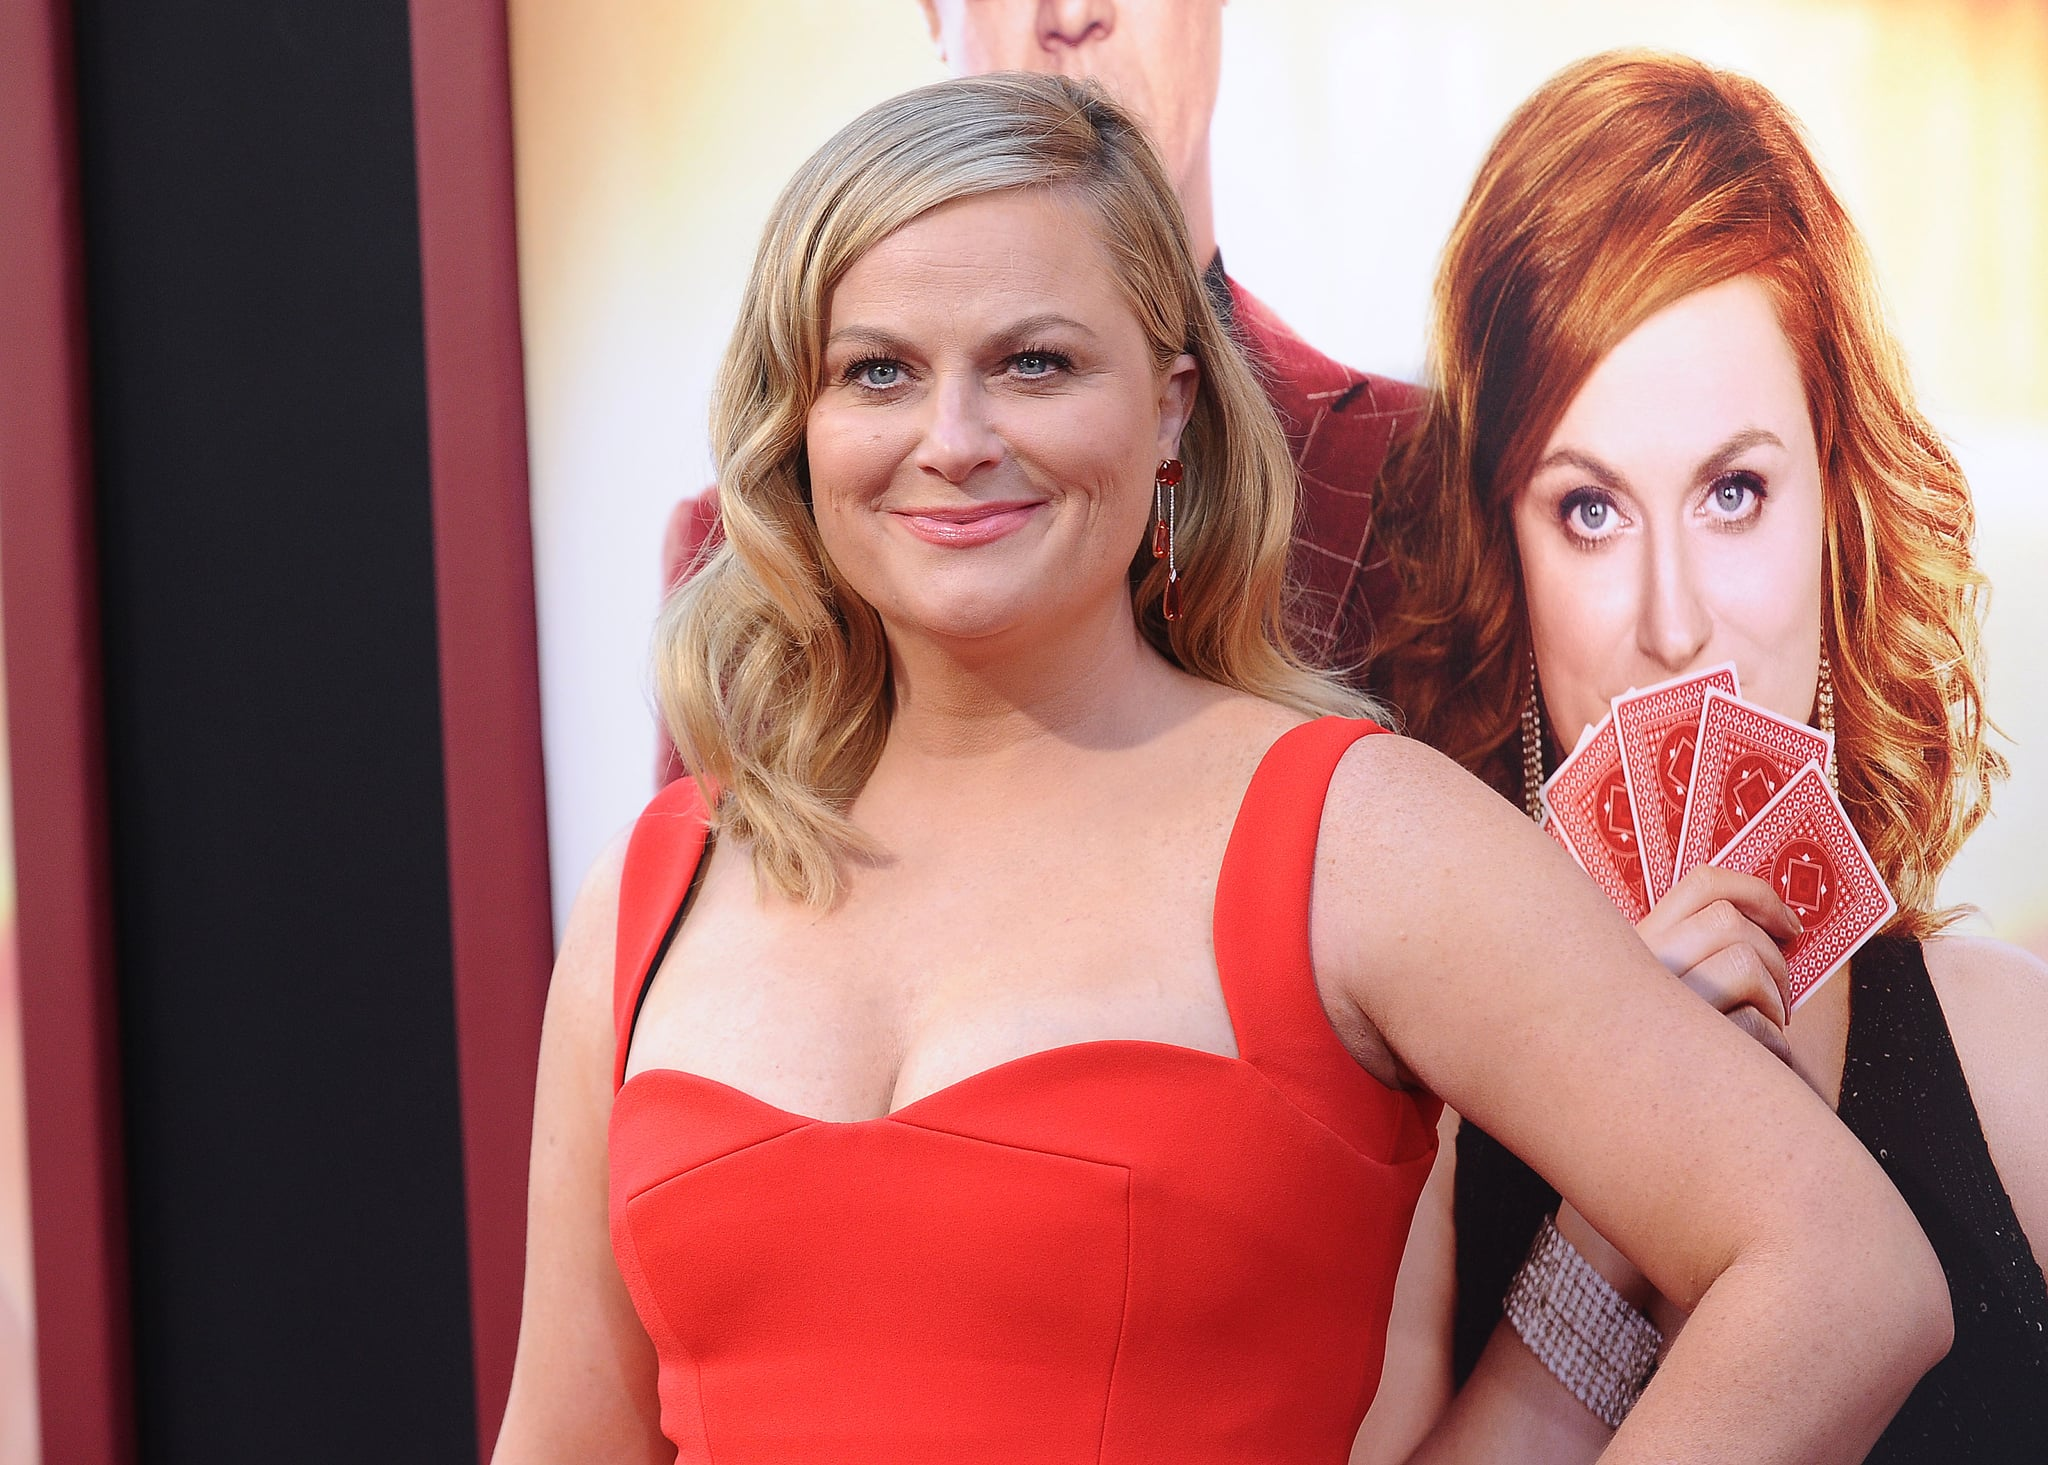 HOLLYWOOD, CA - JUNE 26:  Actress Amy Poehler attends the premiere of